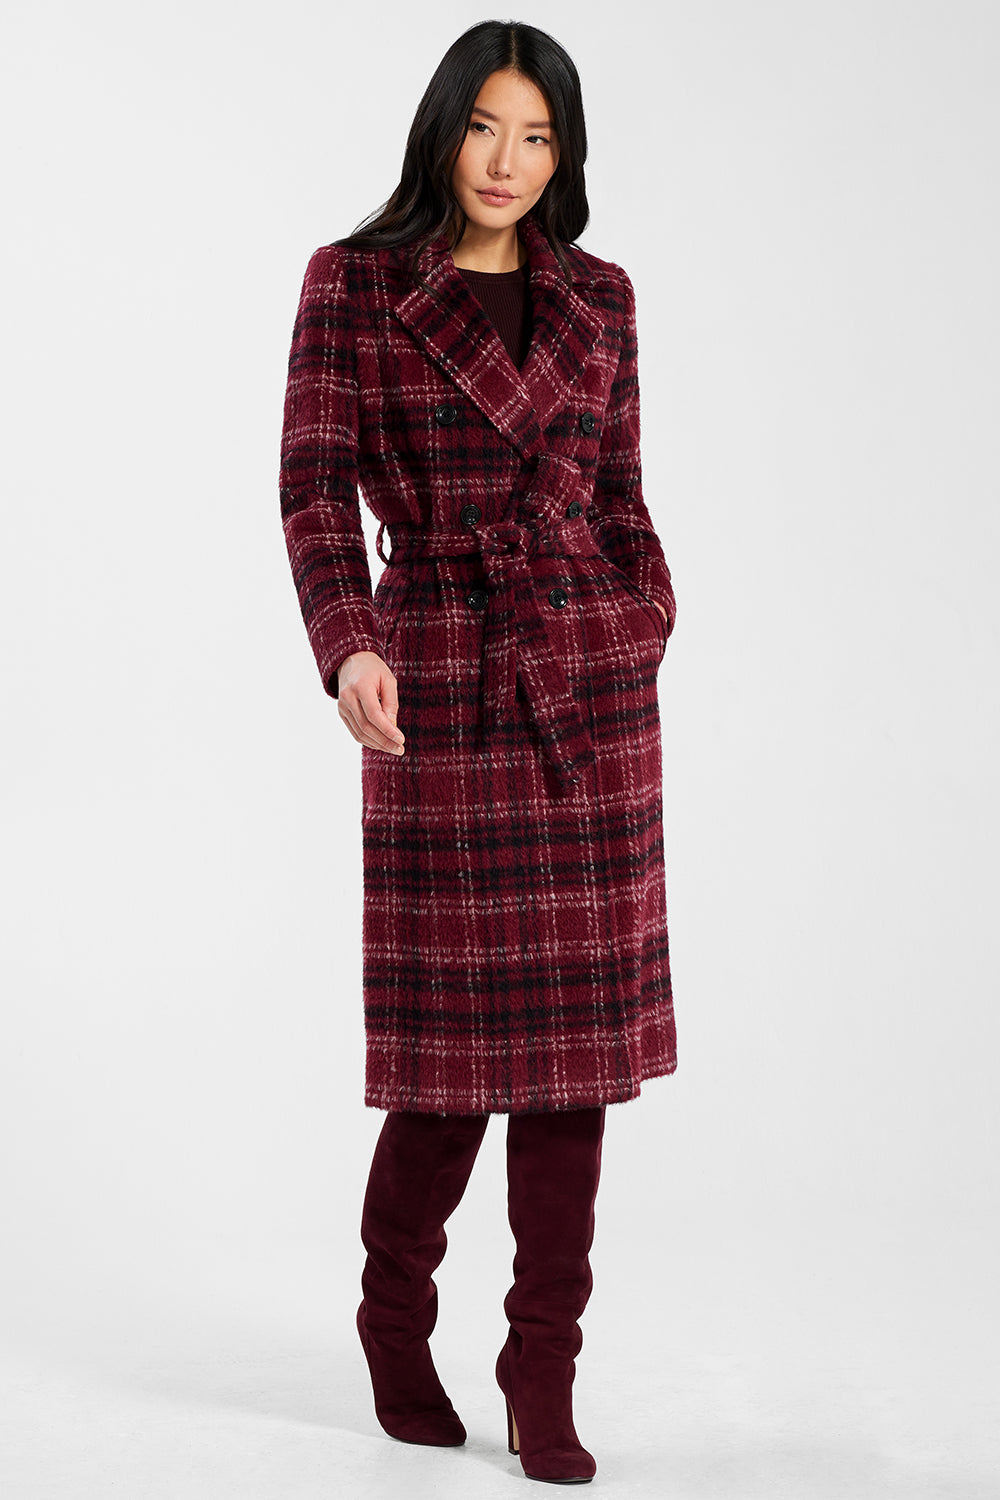 Sentaler Plaid Long Double Breasted Coat featured in Suri Alpaca and available in Garnet Red Plaid. Seen from front.